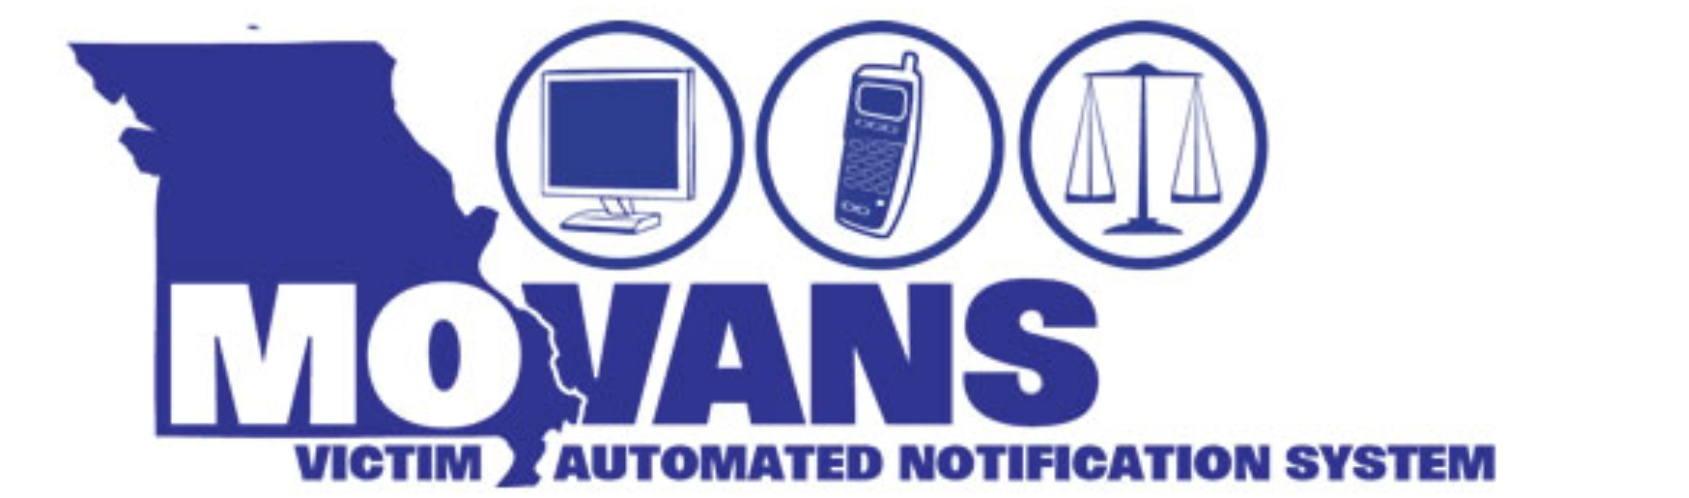 MOVANS.png